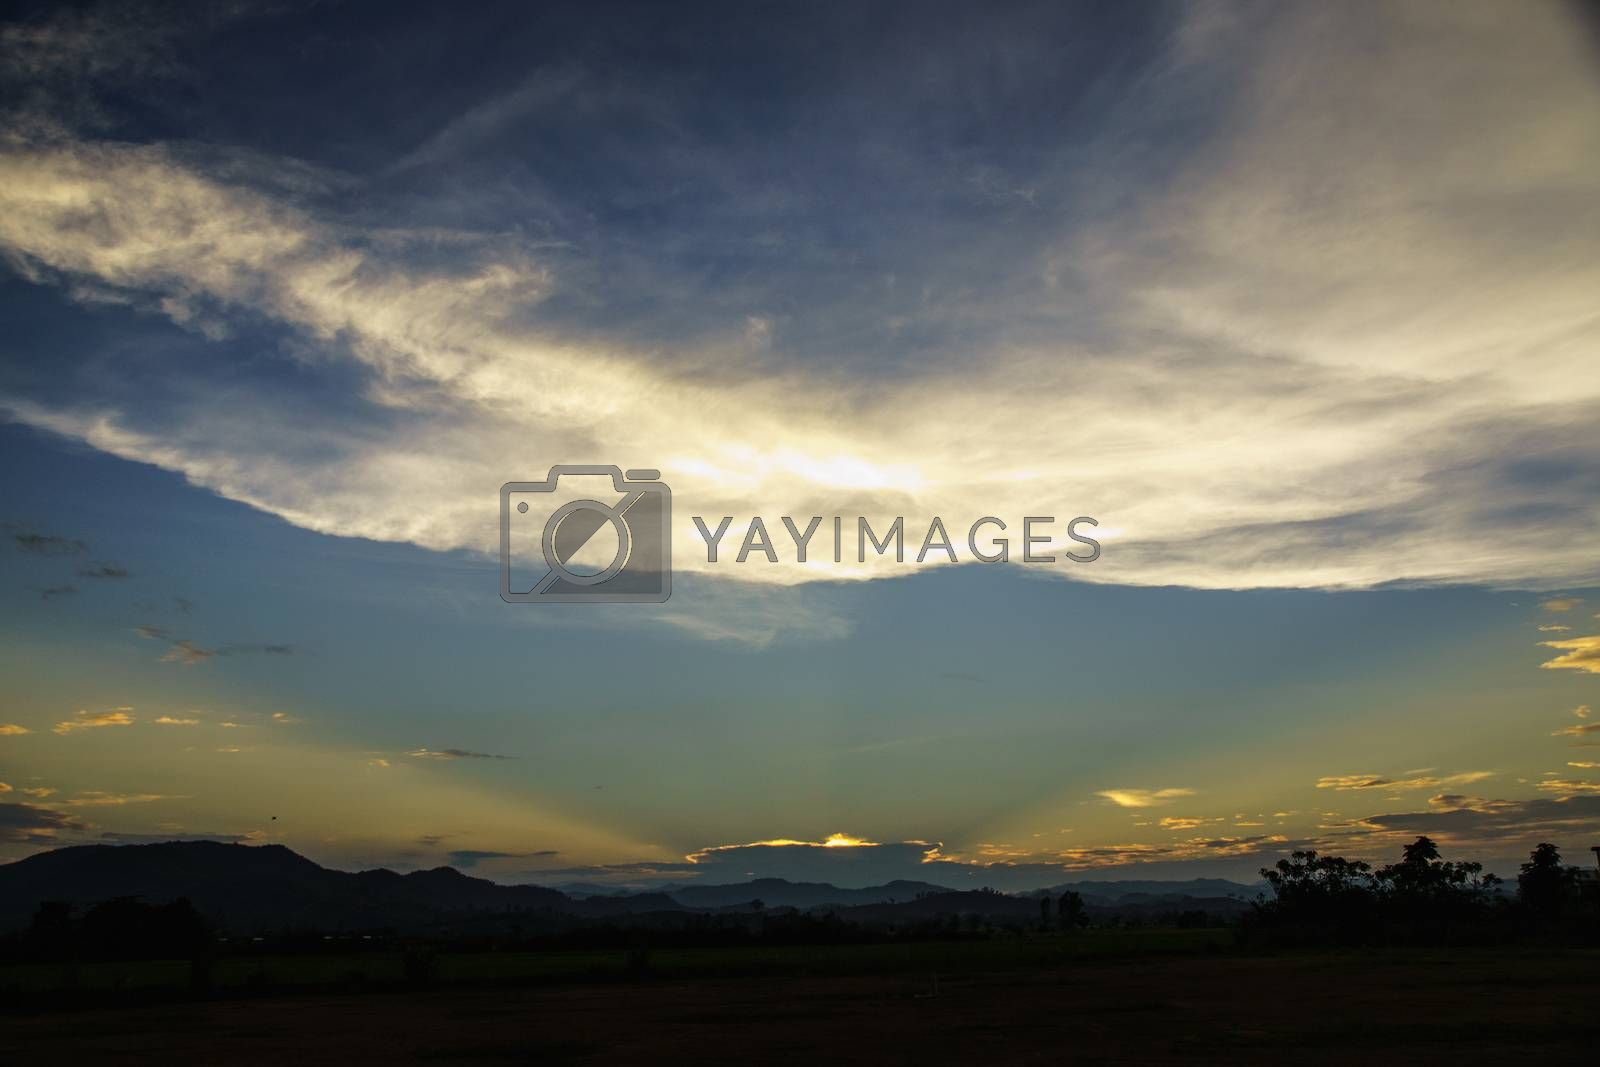 Royalty free image of cloud and sky by nattapatt